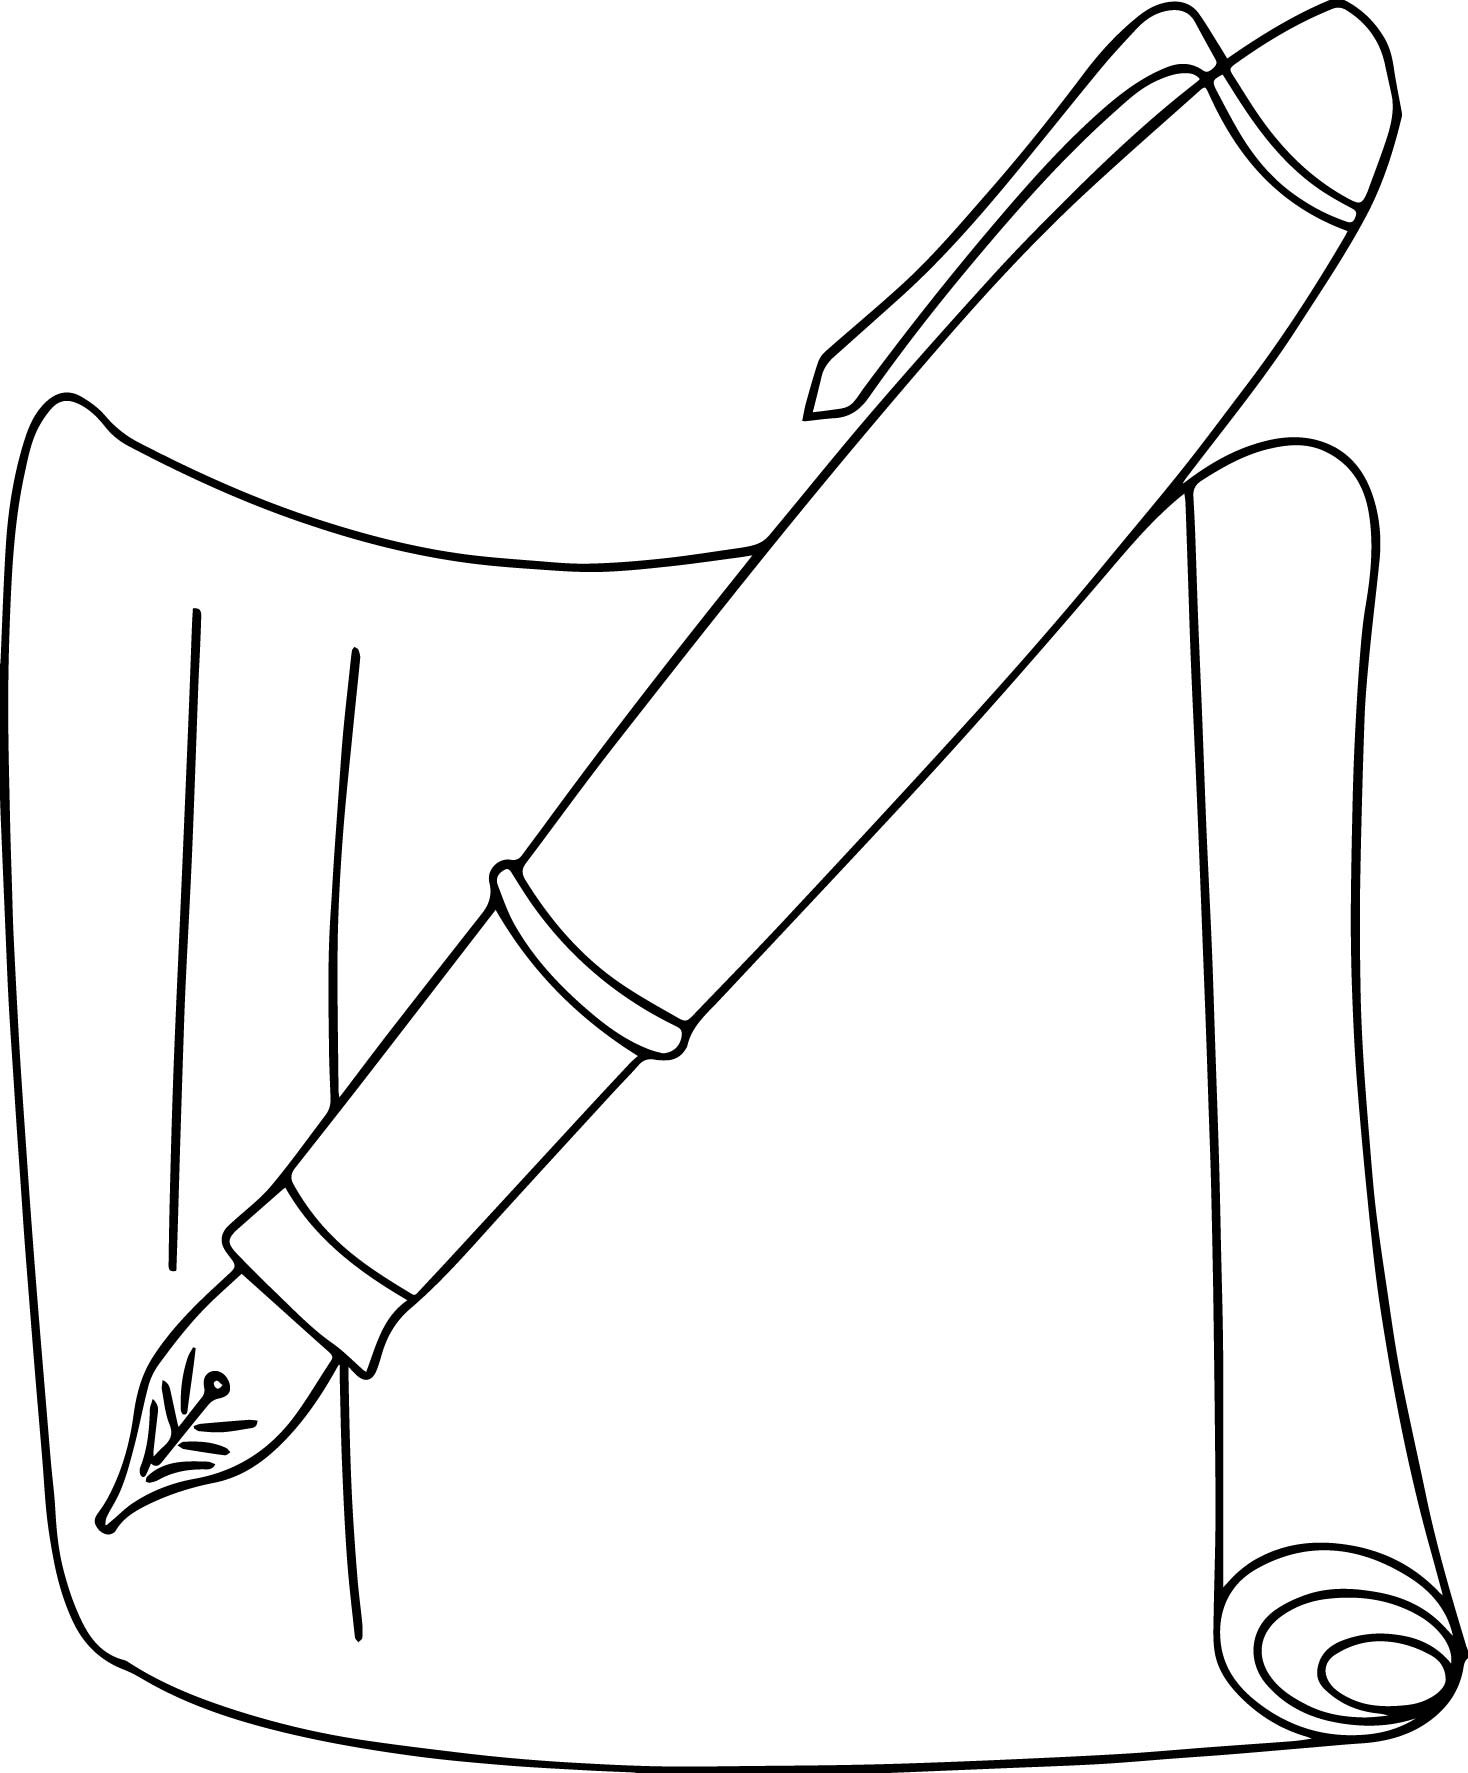 School Pen Coloring Page Awesome top 89 Pen Coloring Pages Free ...